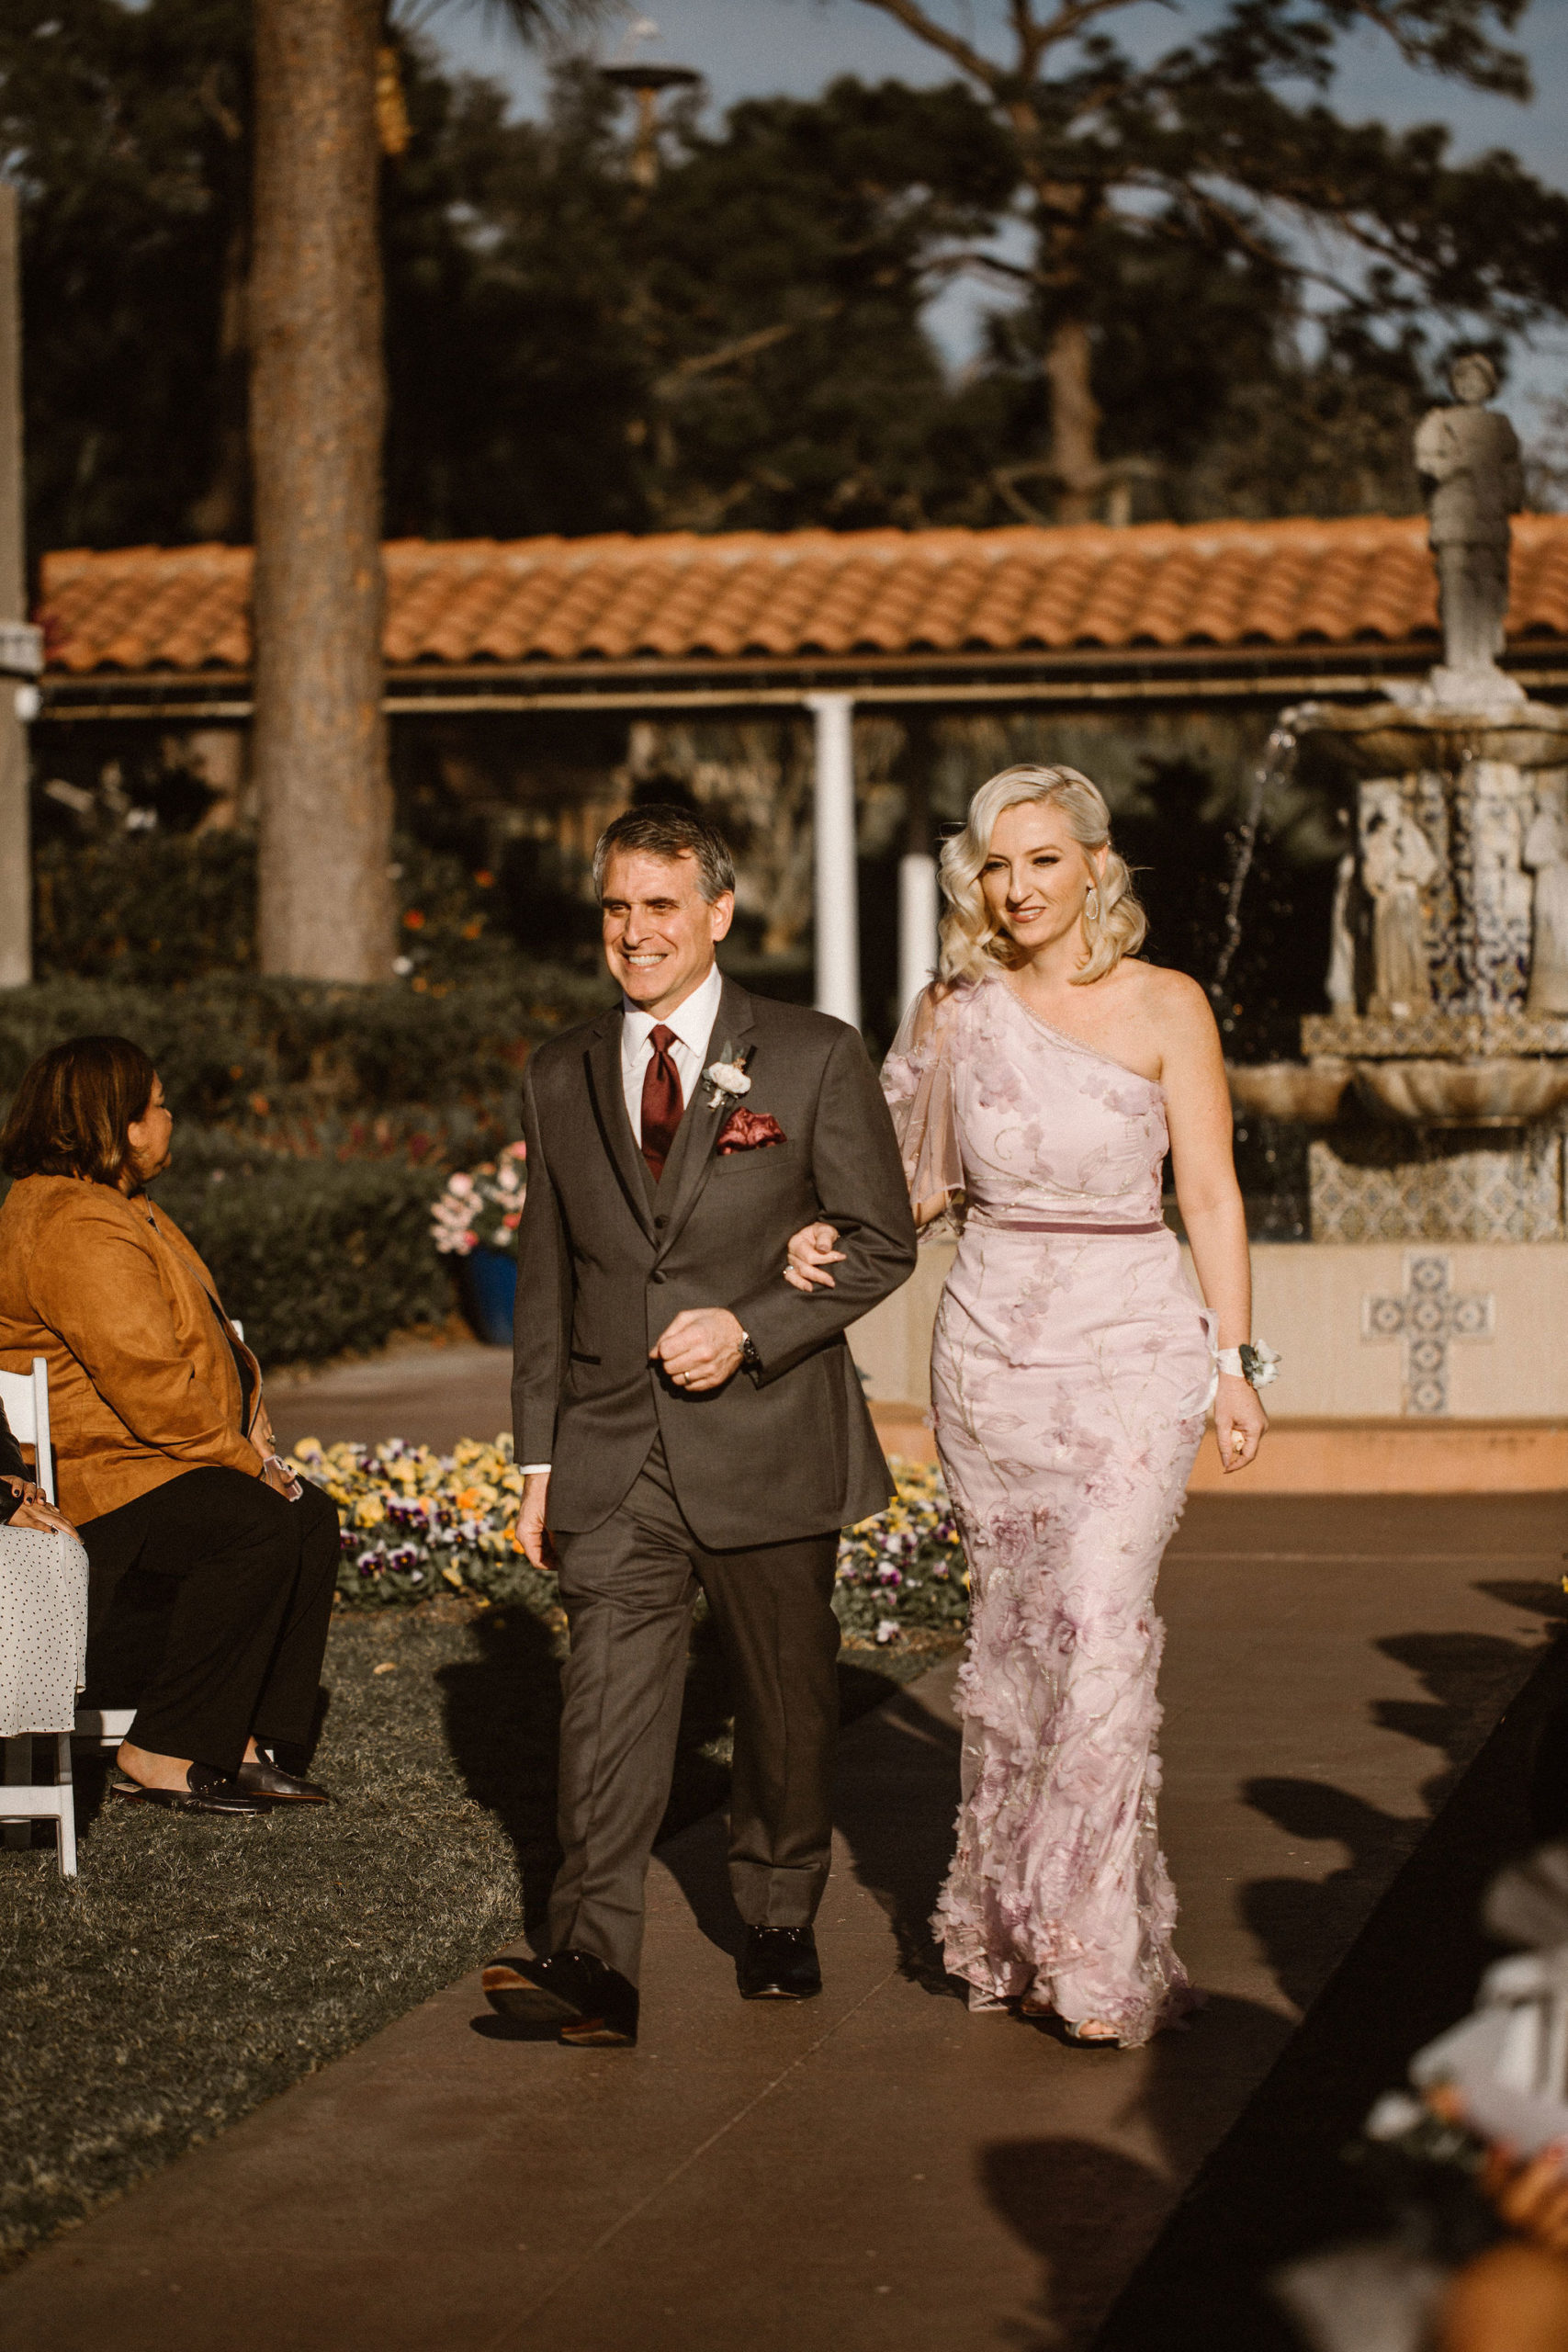 Wedding Party Walking Down the Aisle at Mission Inn Resorts Plaza de la Fontana for a romantic, mauve wedding